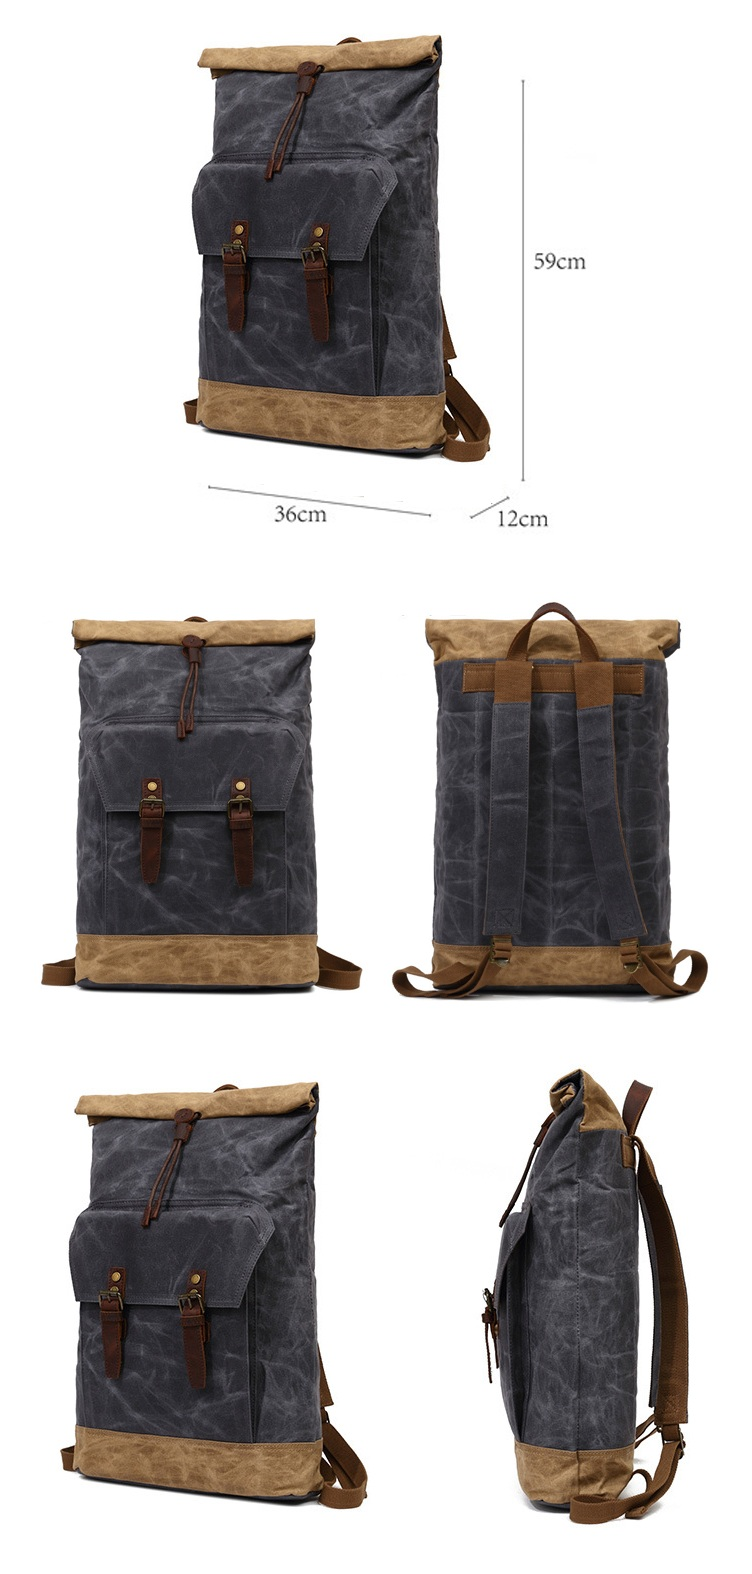 2018 Wholesale vintage new model waxed canvas leather trim water proof camping outdoor hiking rucksack backpack back pack bag